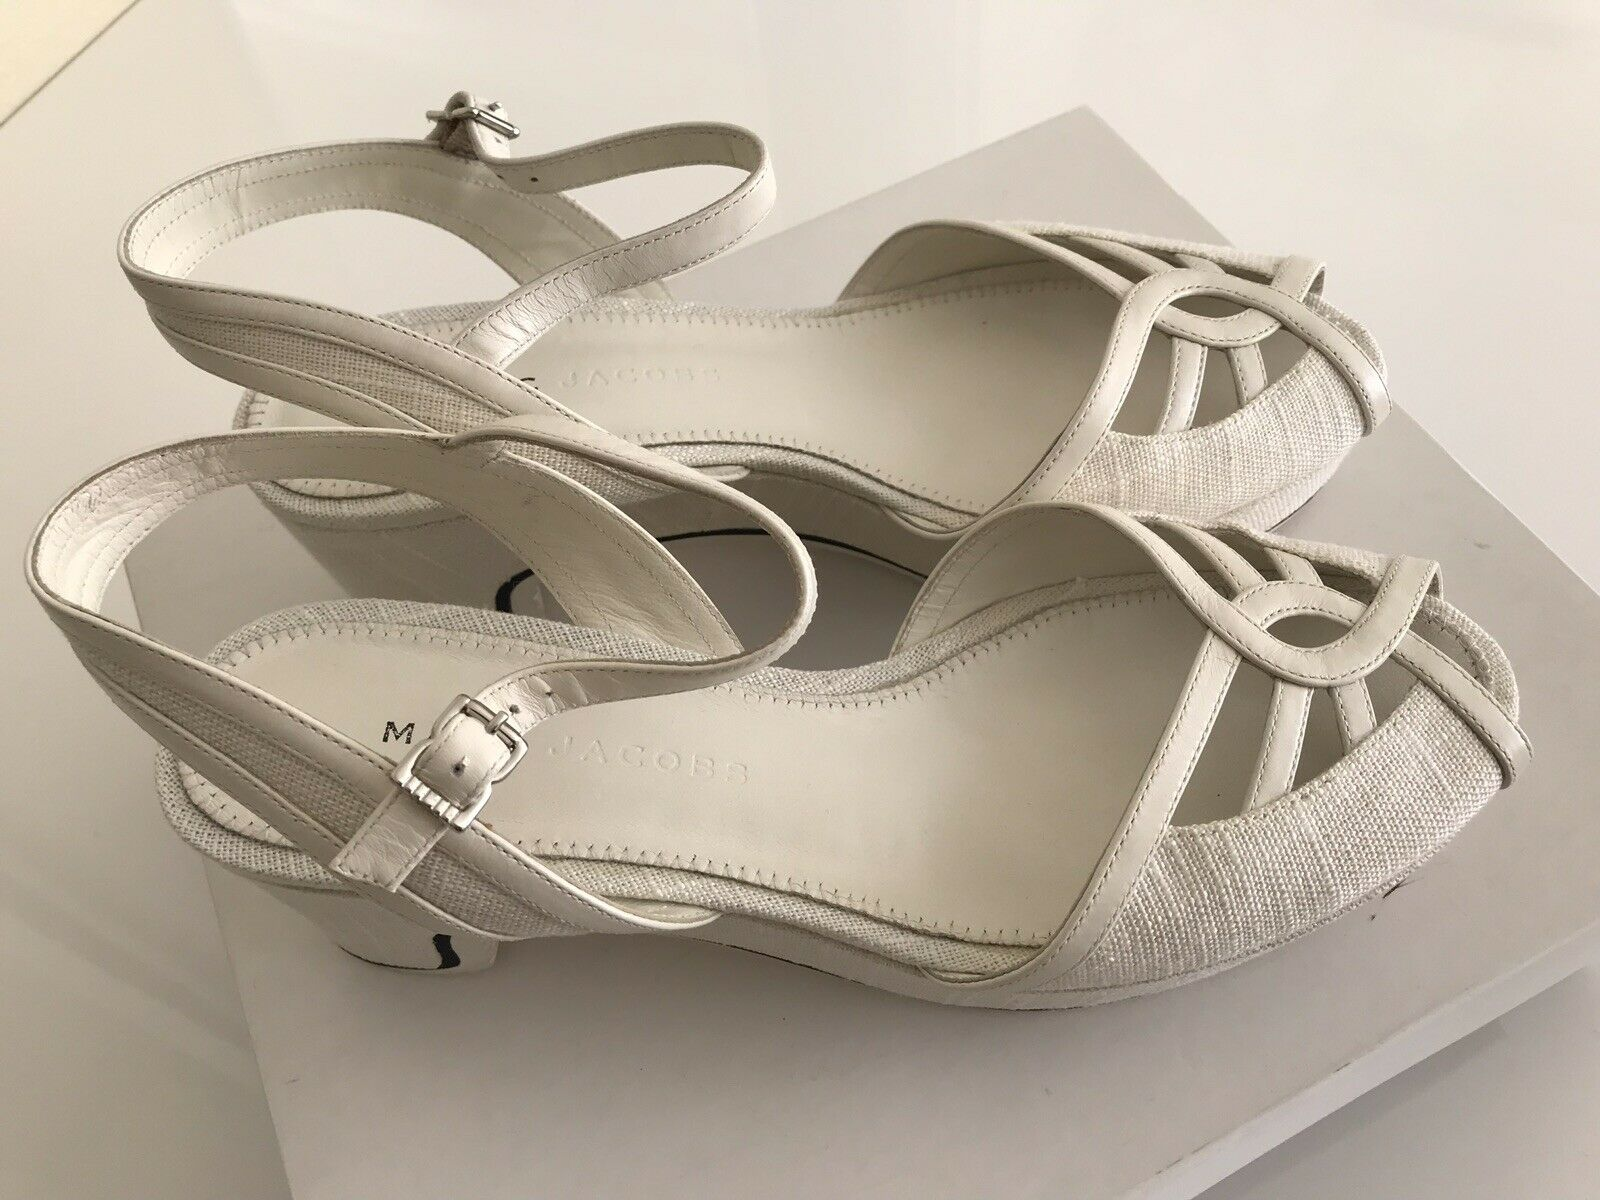 Marc Jacobs FAB White Calf Chalk Sandals Size 6.5